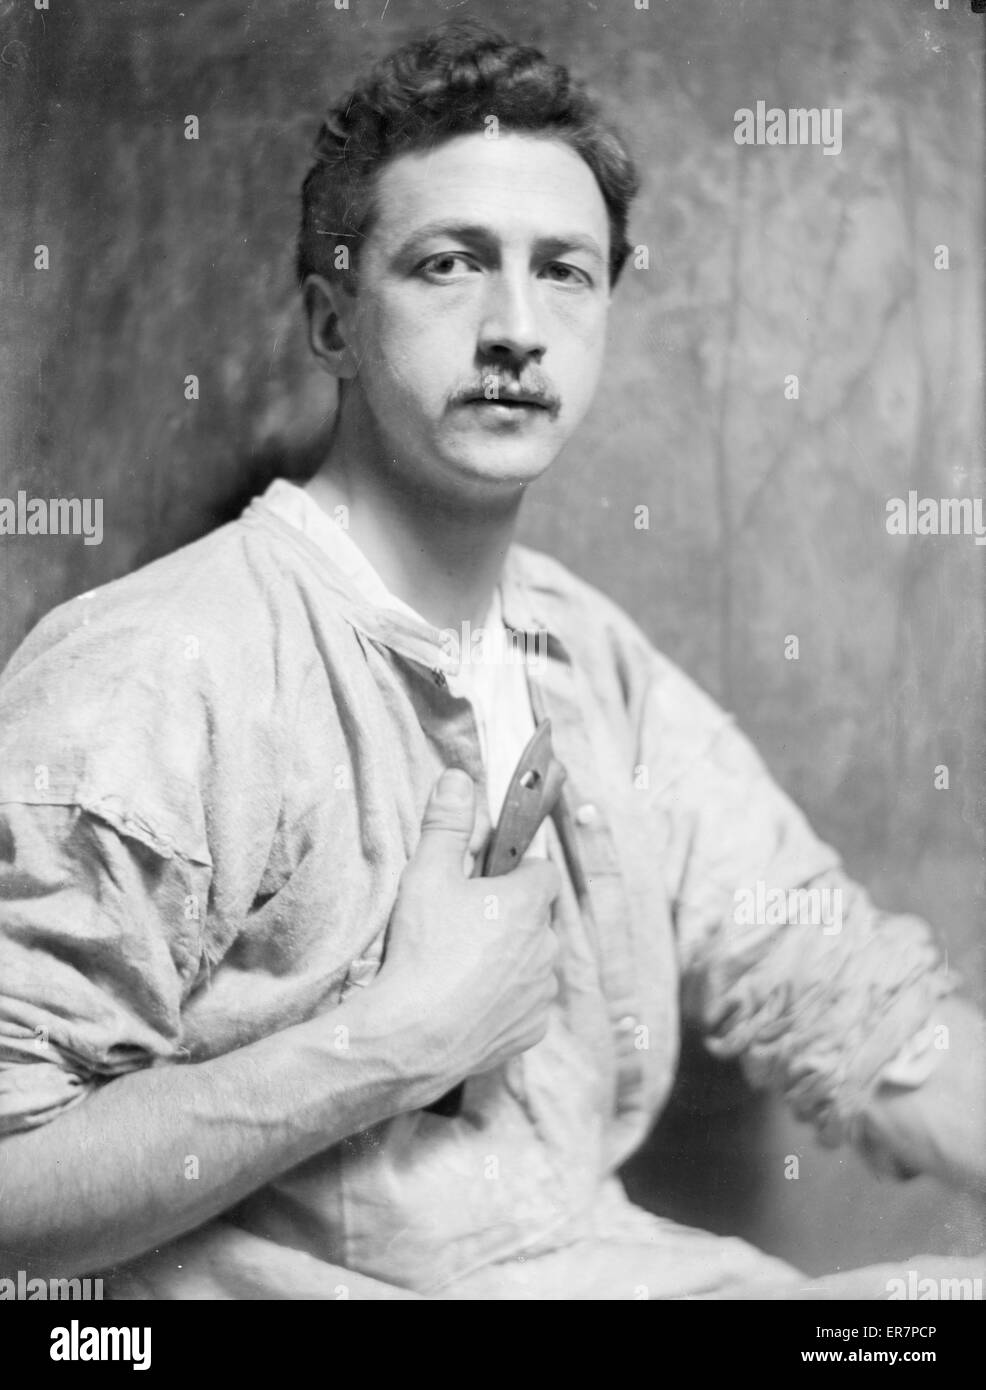 Chester Beach, the American sculptor (1881-1956). Chester Beach, half-length portrait, facing front. Date ca. 1908. - Stock Image